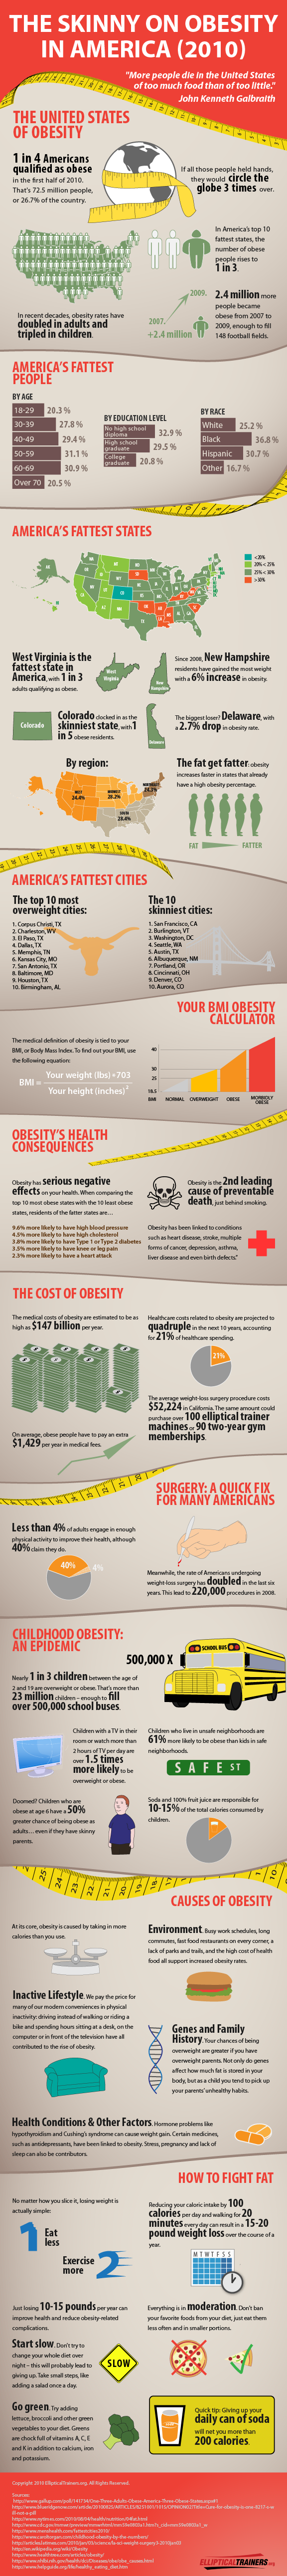 Guide to Obesity Statistics and Facts in the United States